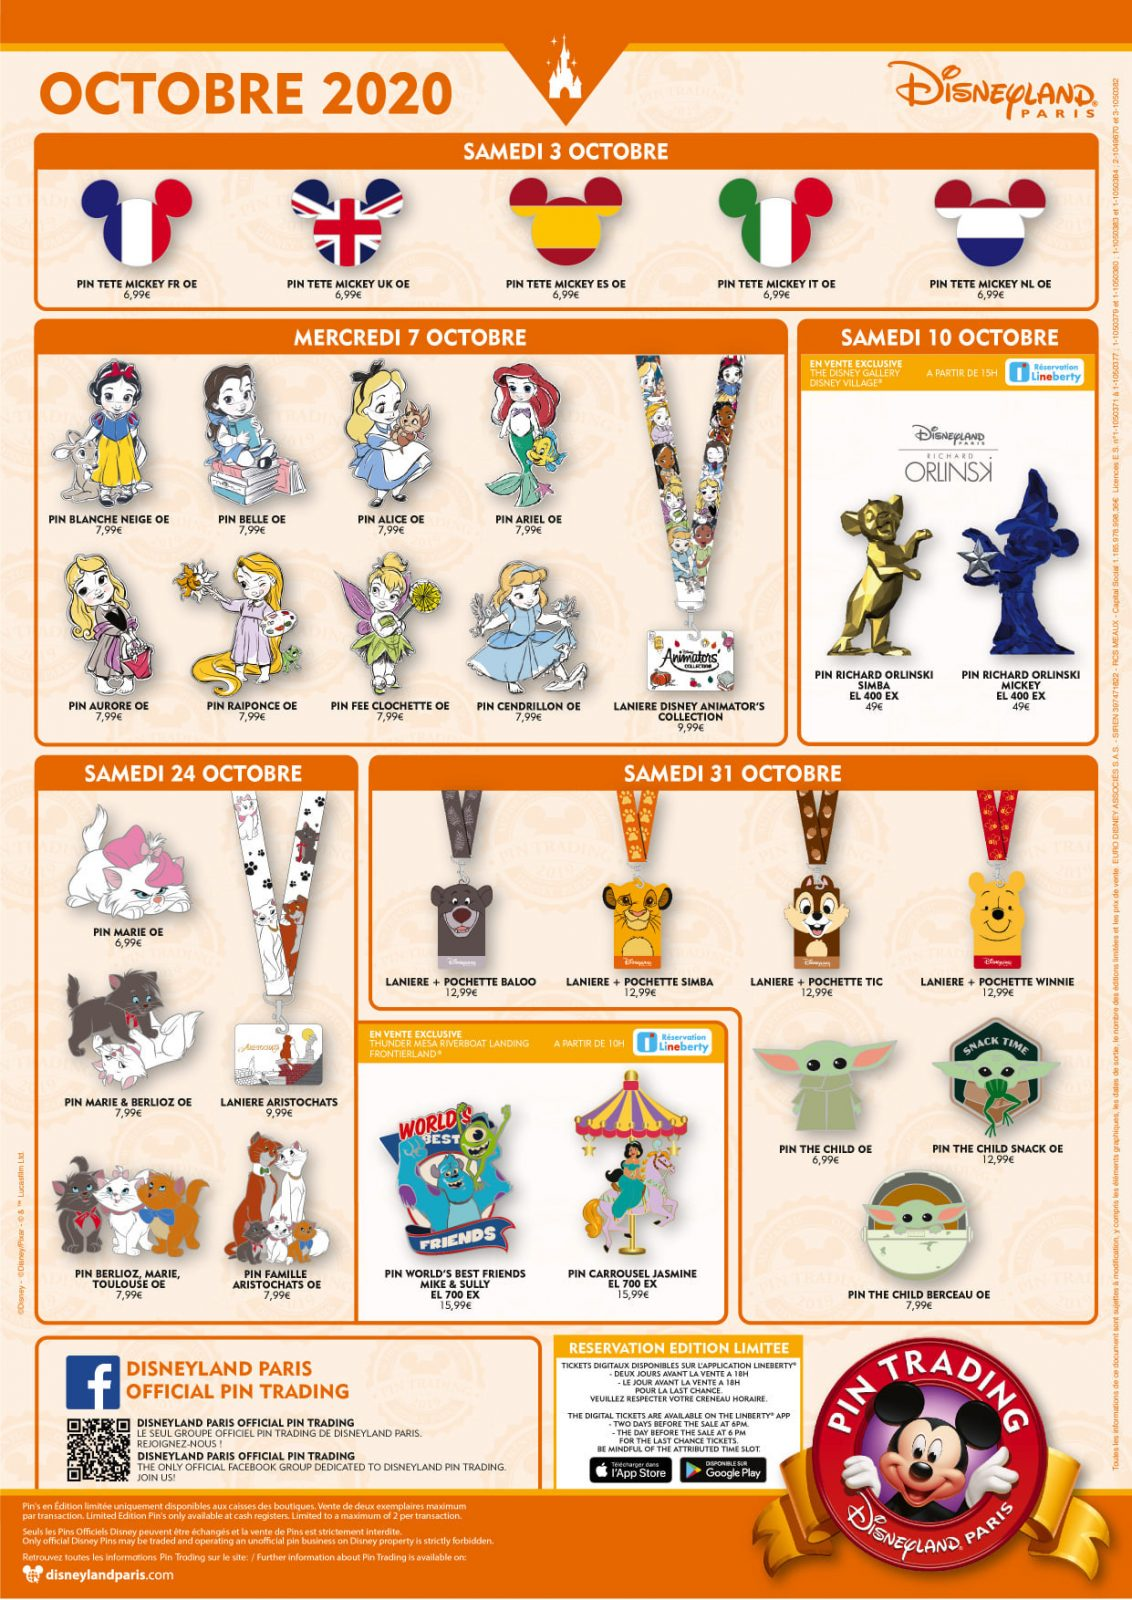 Disneyland Paris October 2020 Pins